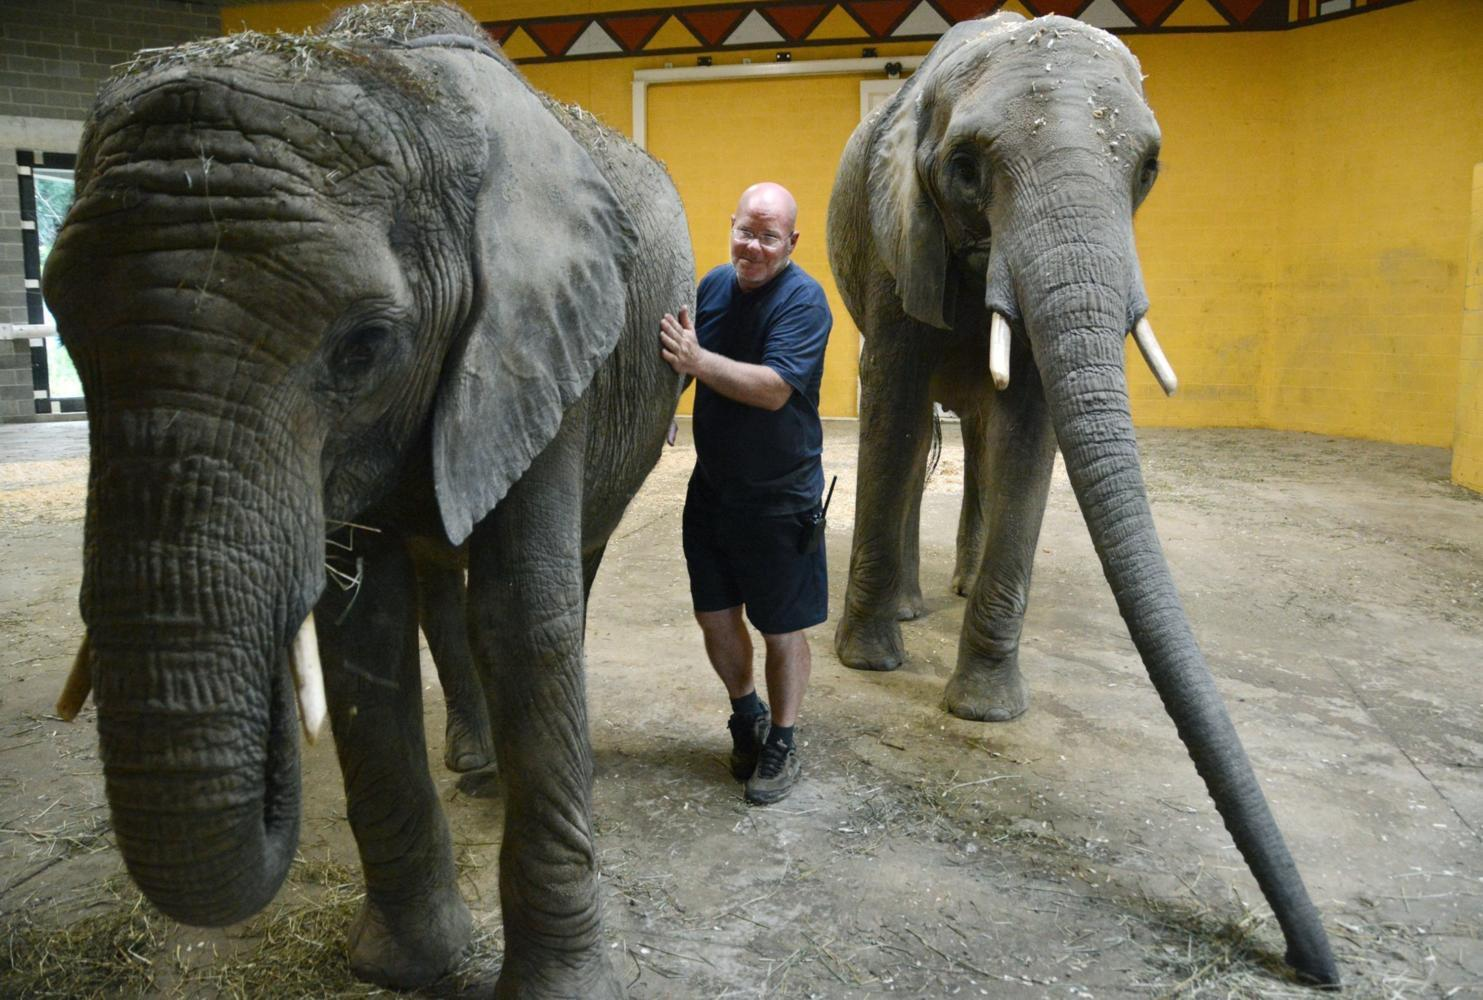 Willie Theison, elephant program manager at the Pittsburgh Zoo, stands between Zuri and her sister Victoria. (Nate Guidry/Pittsburgh Post-Gazette/MCT)